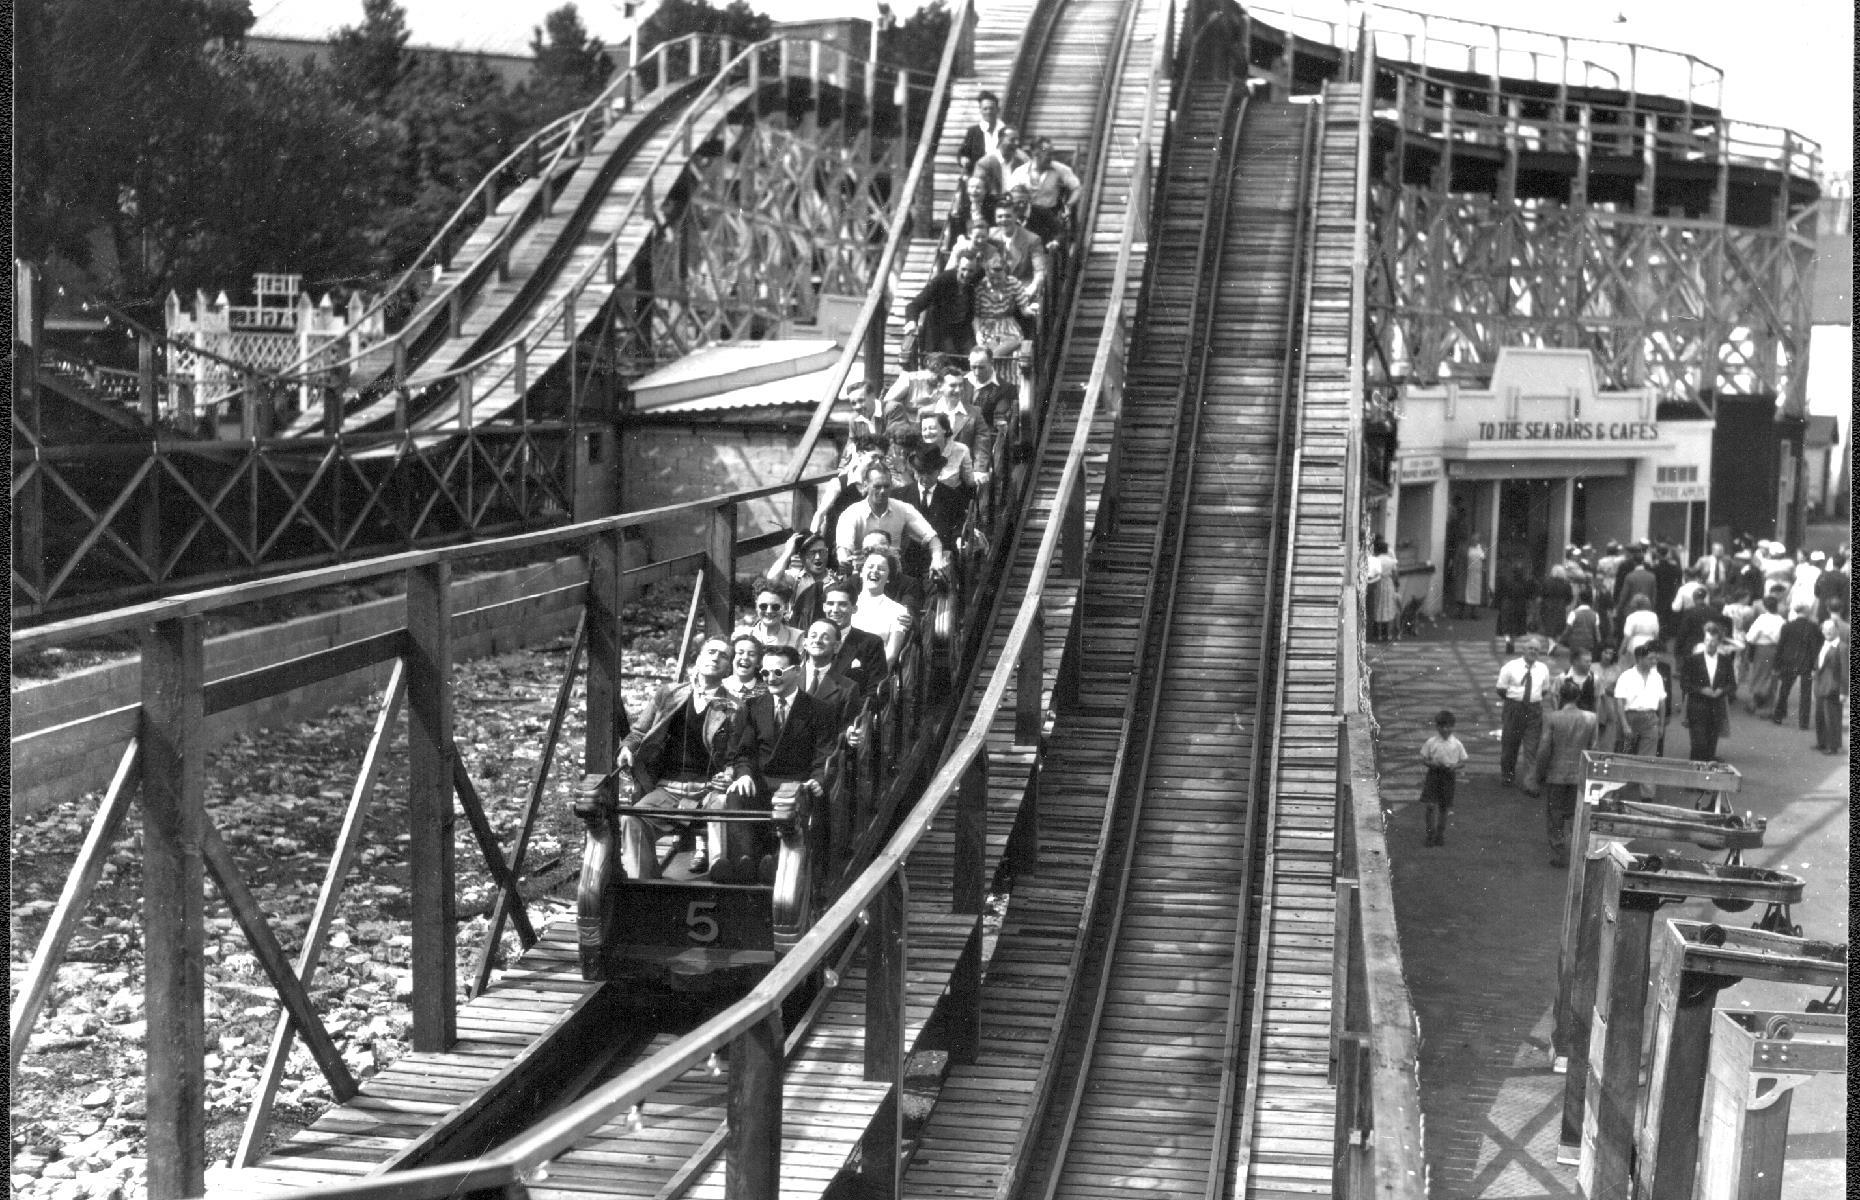 Slide 30 of 35: It was in the 1920s, however, that the park began to take its modern shape. The Scenic Railway – a wooden coaster finished in 1920 – helped seal the park's success for years to come. It was badly damaged in the fire of 2008, but has once again been restored and remains a Grade II-listed structure. It's pictured in action during the 1930s. Check out other exciting roller coasters from around the world too.